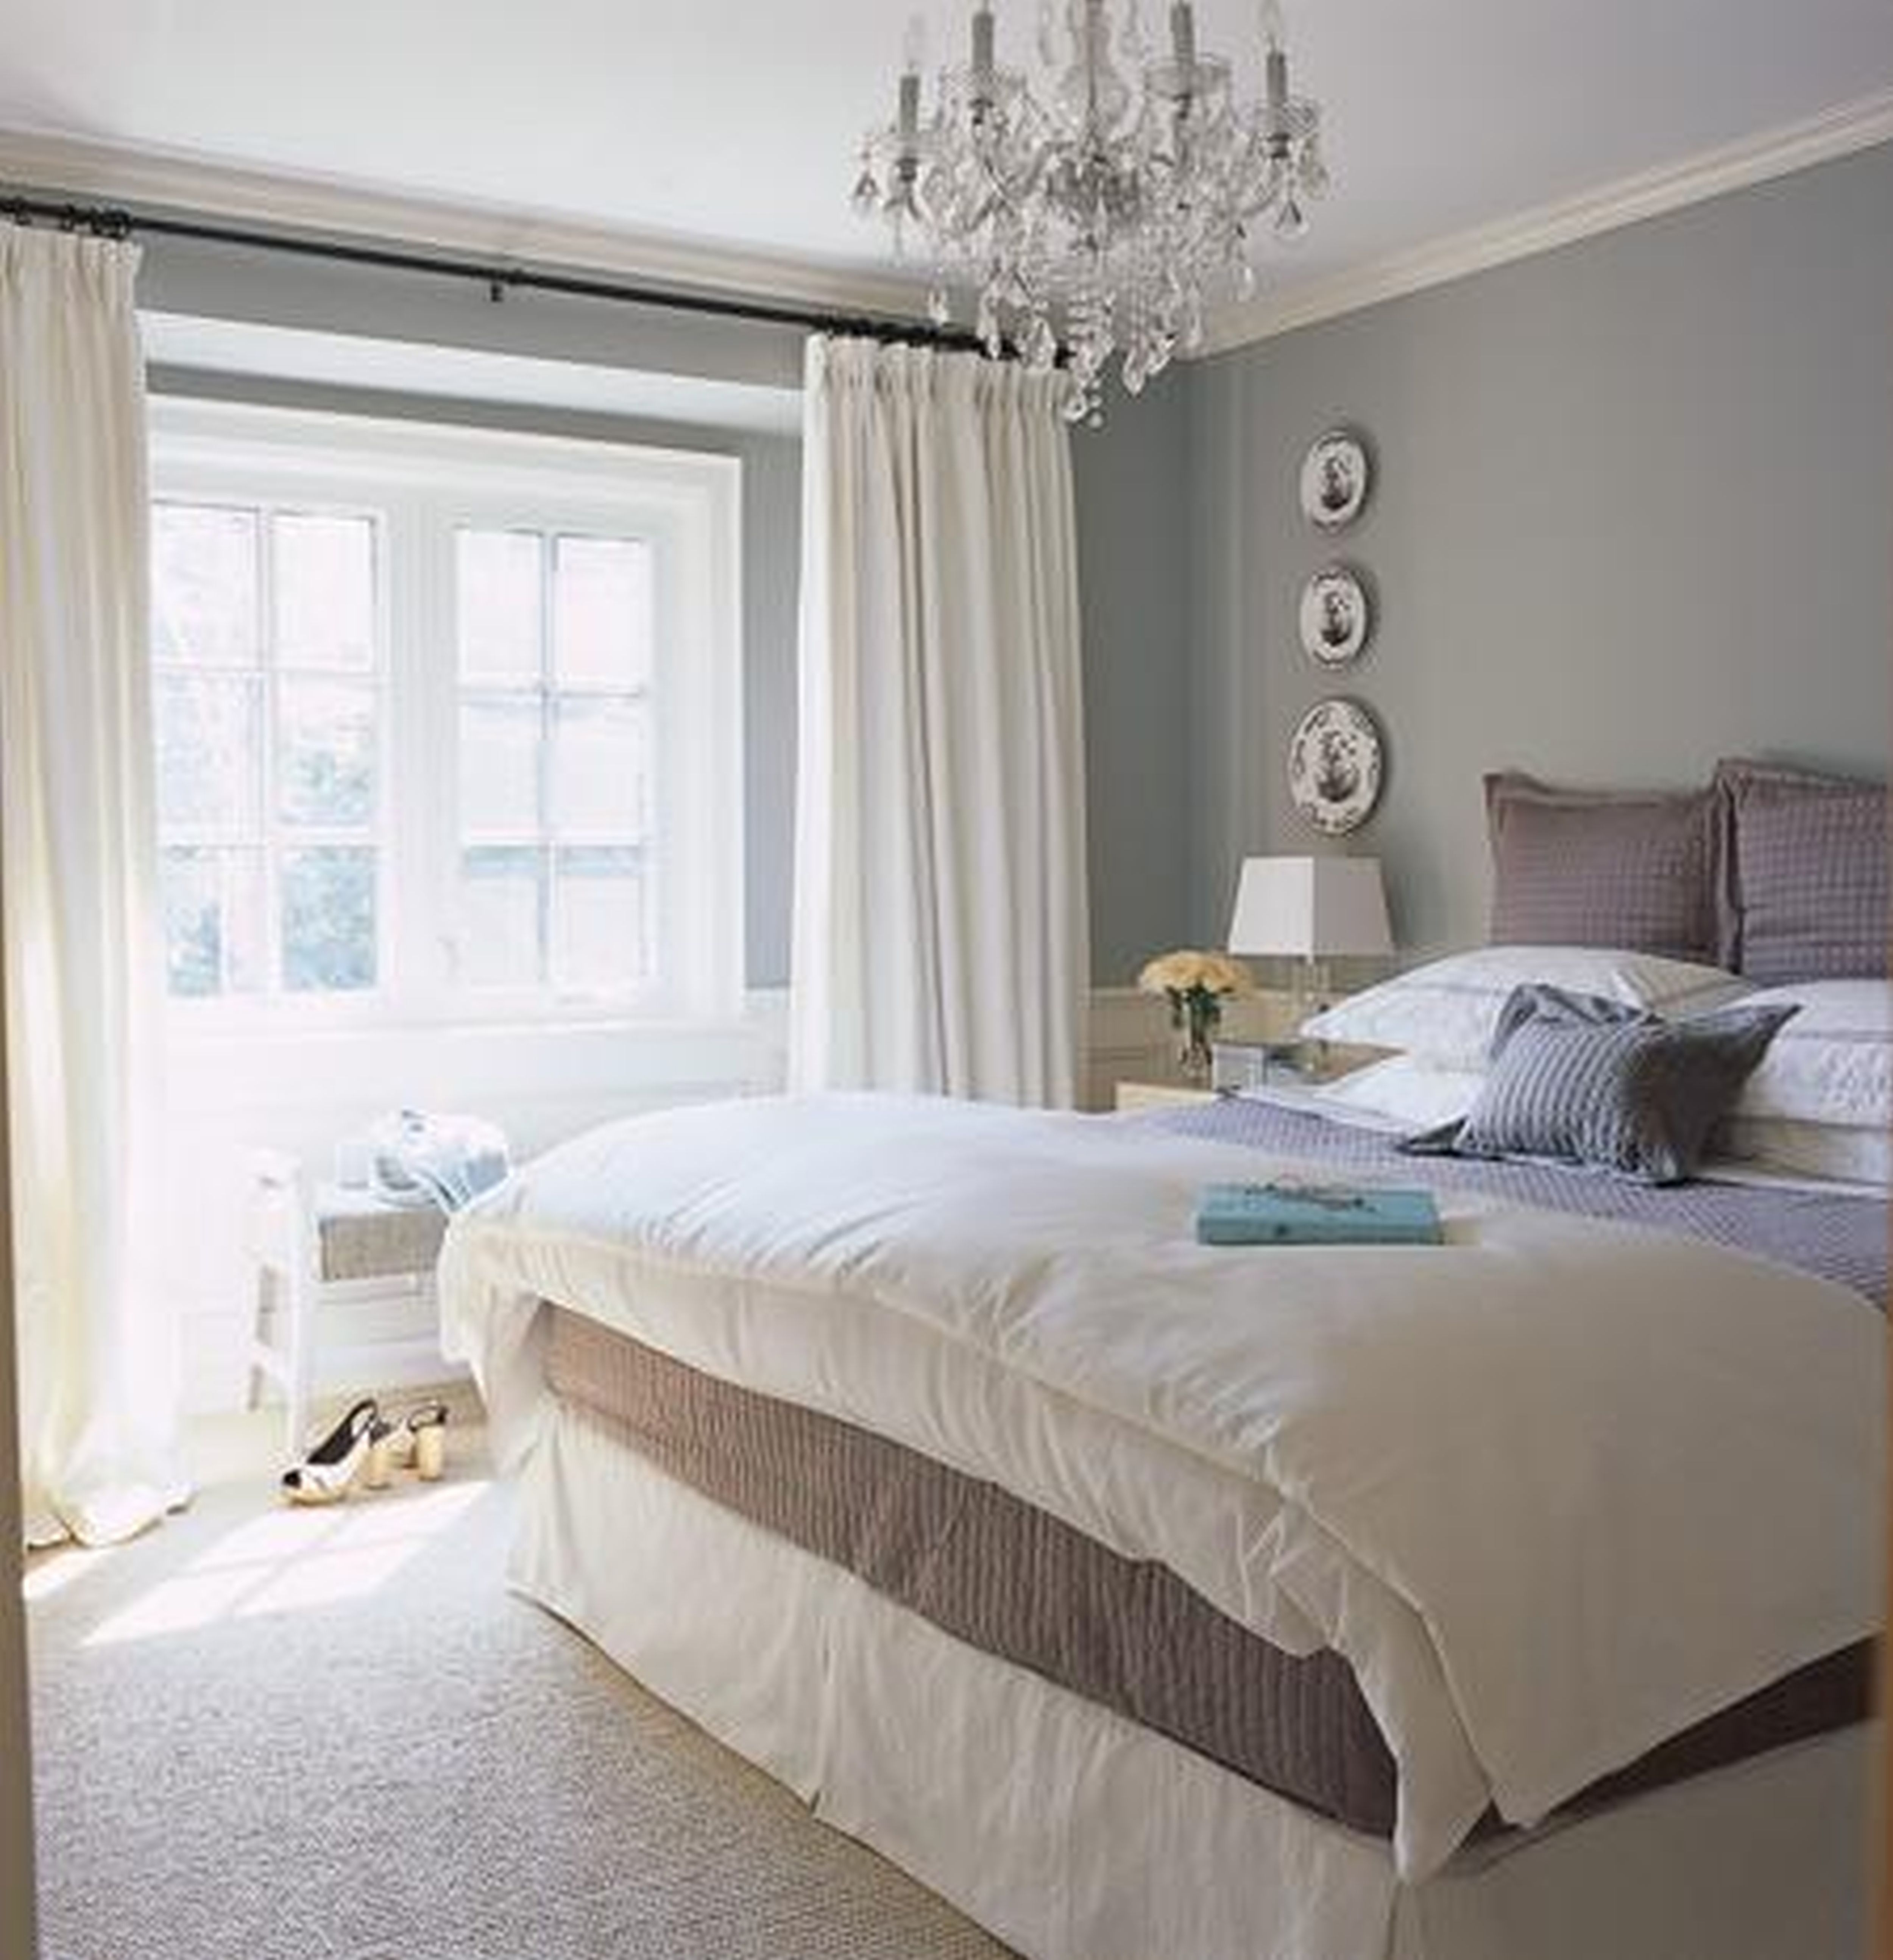 Design ideas for a small bedroom - Lydia's interiors on Small Room Ideas  id=12525